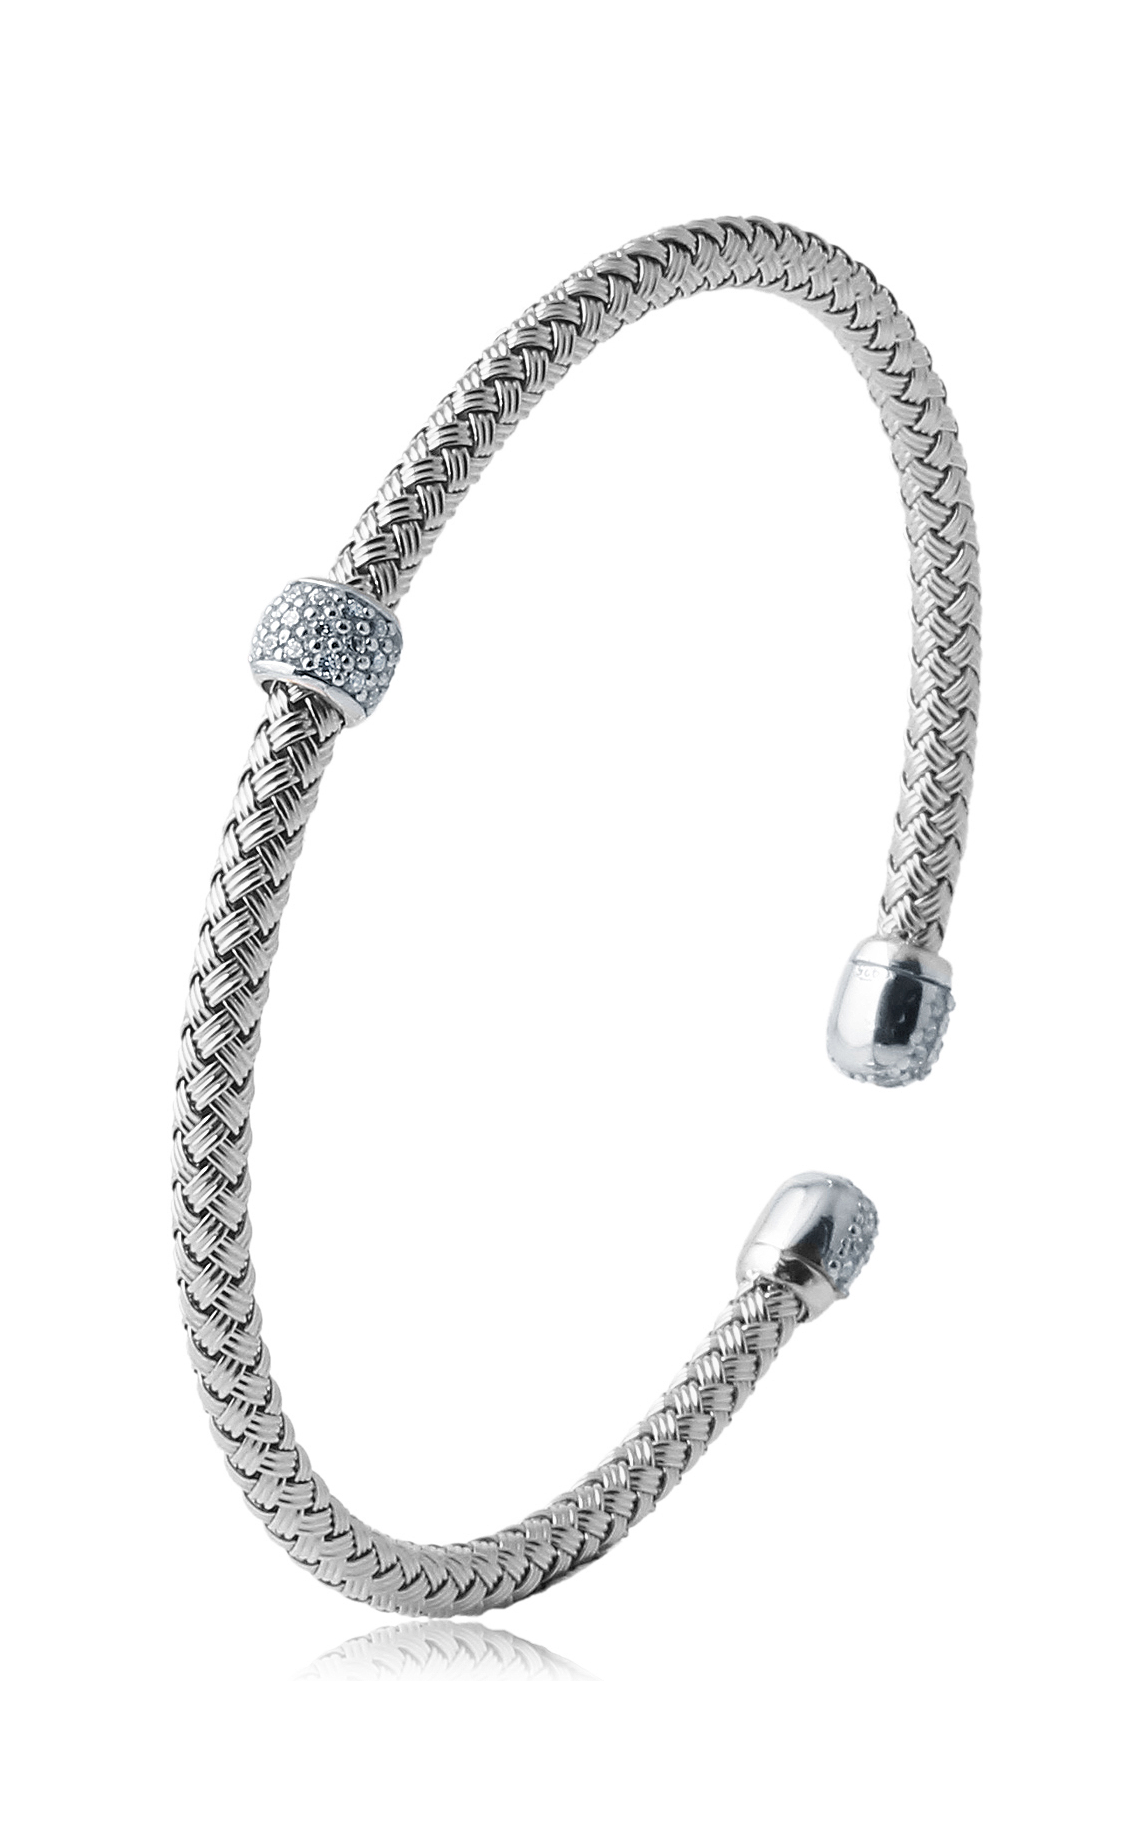 Charles Garnier Bracelets Bracelet Paolo Collection MLC8059WZ product image